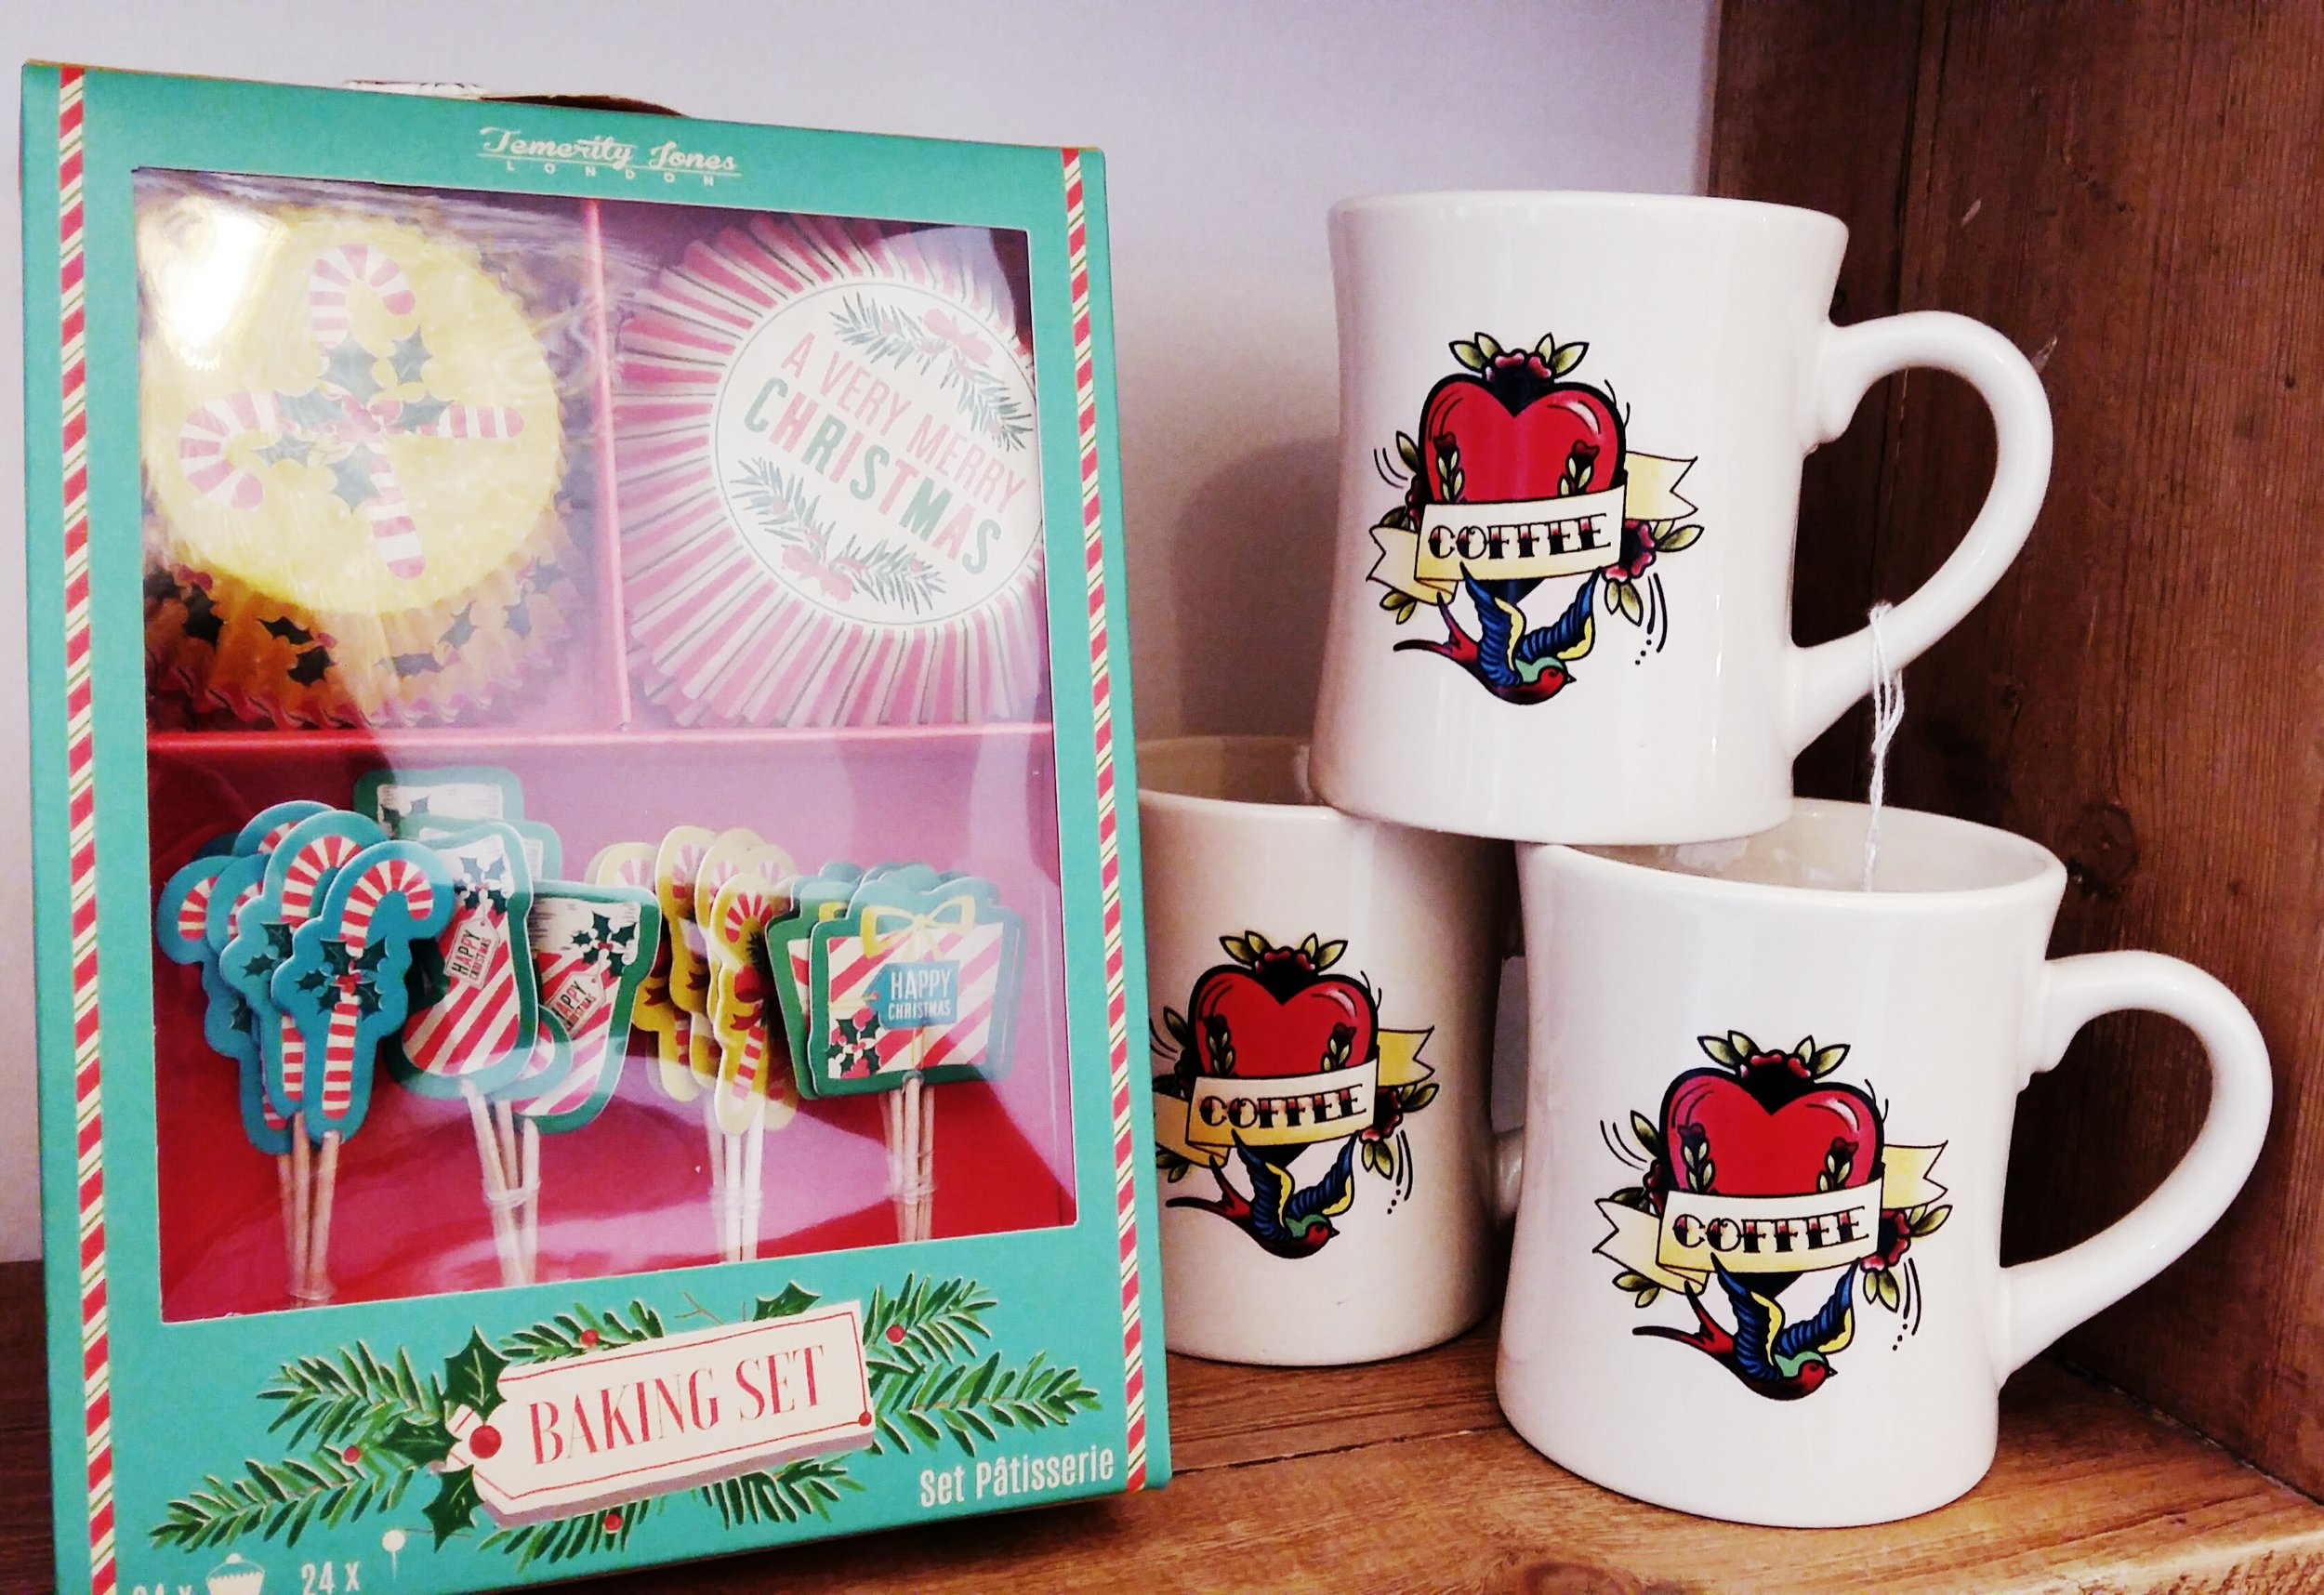 For budding bakers our baking set incudes a range of retro print cupcake cases and dec's